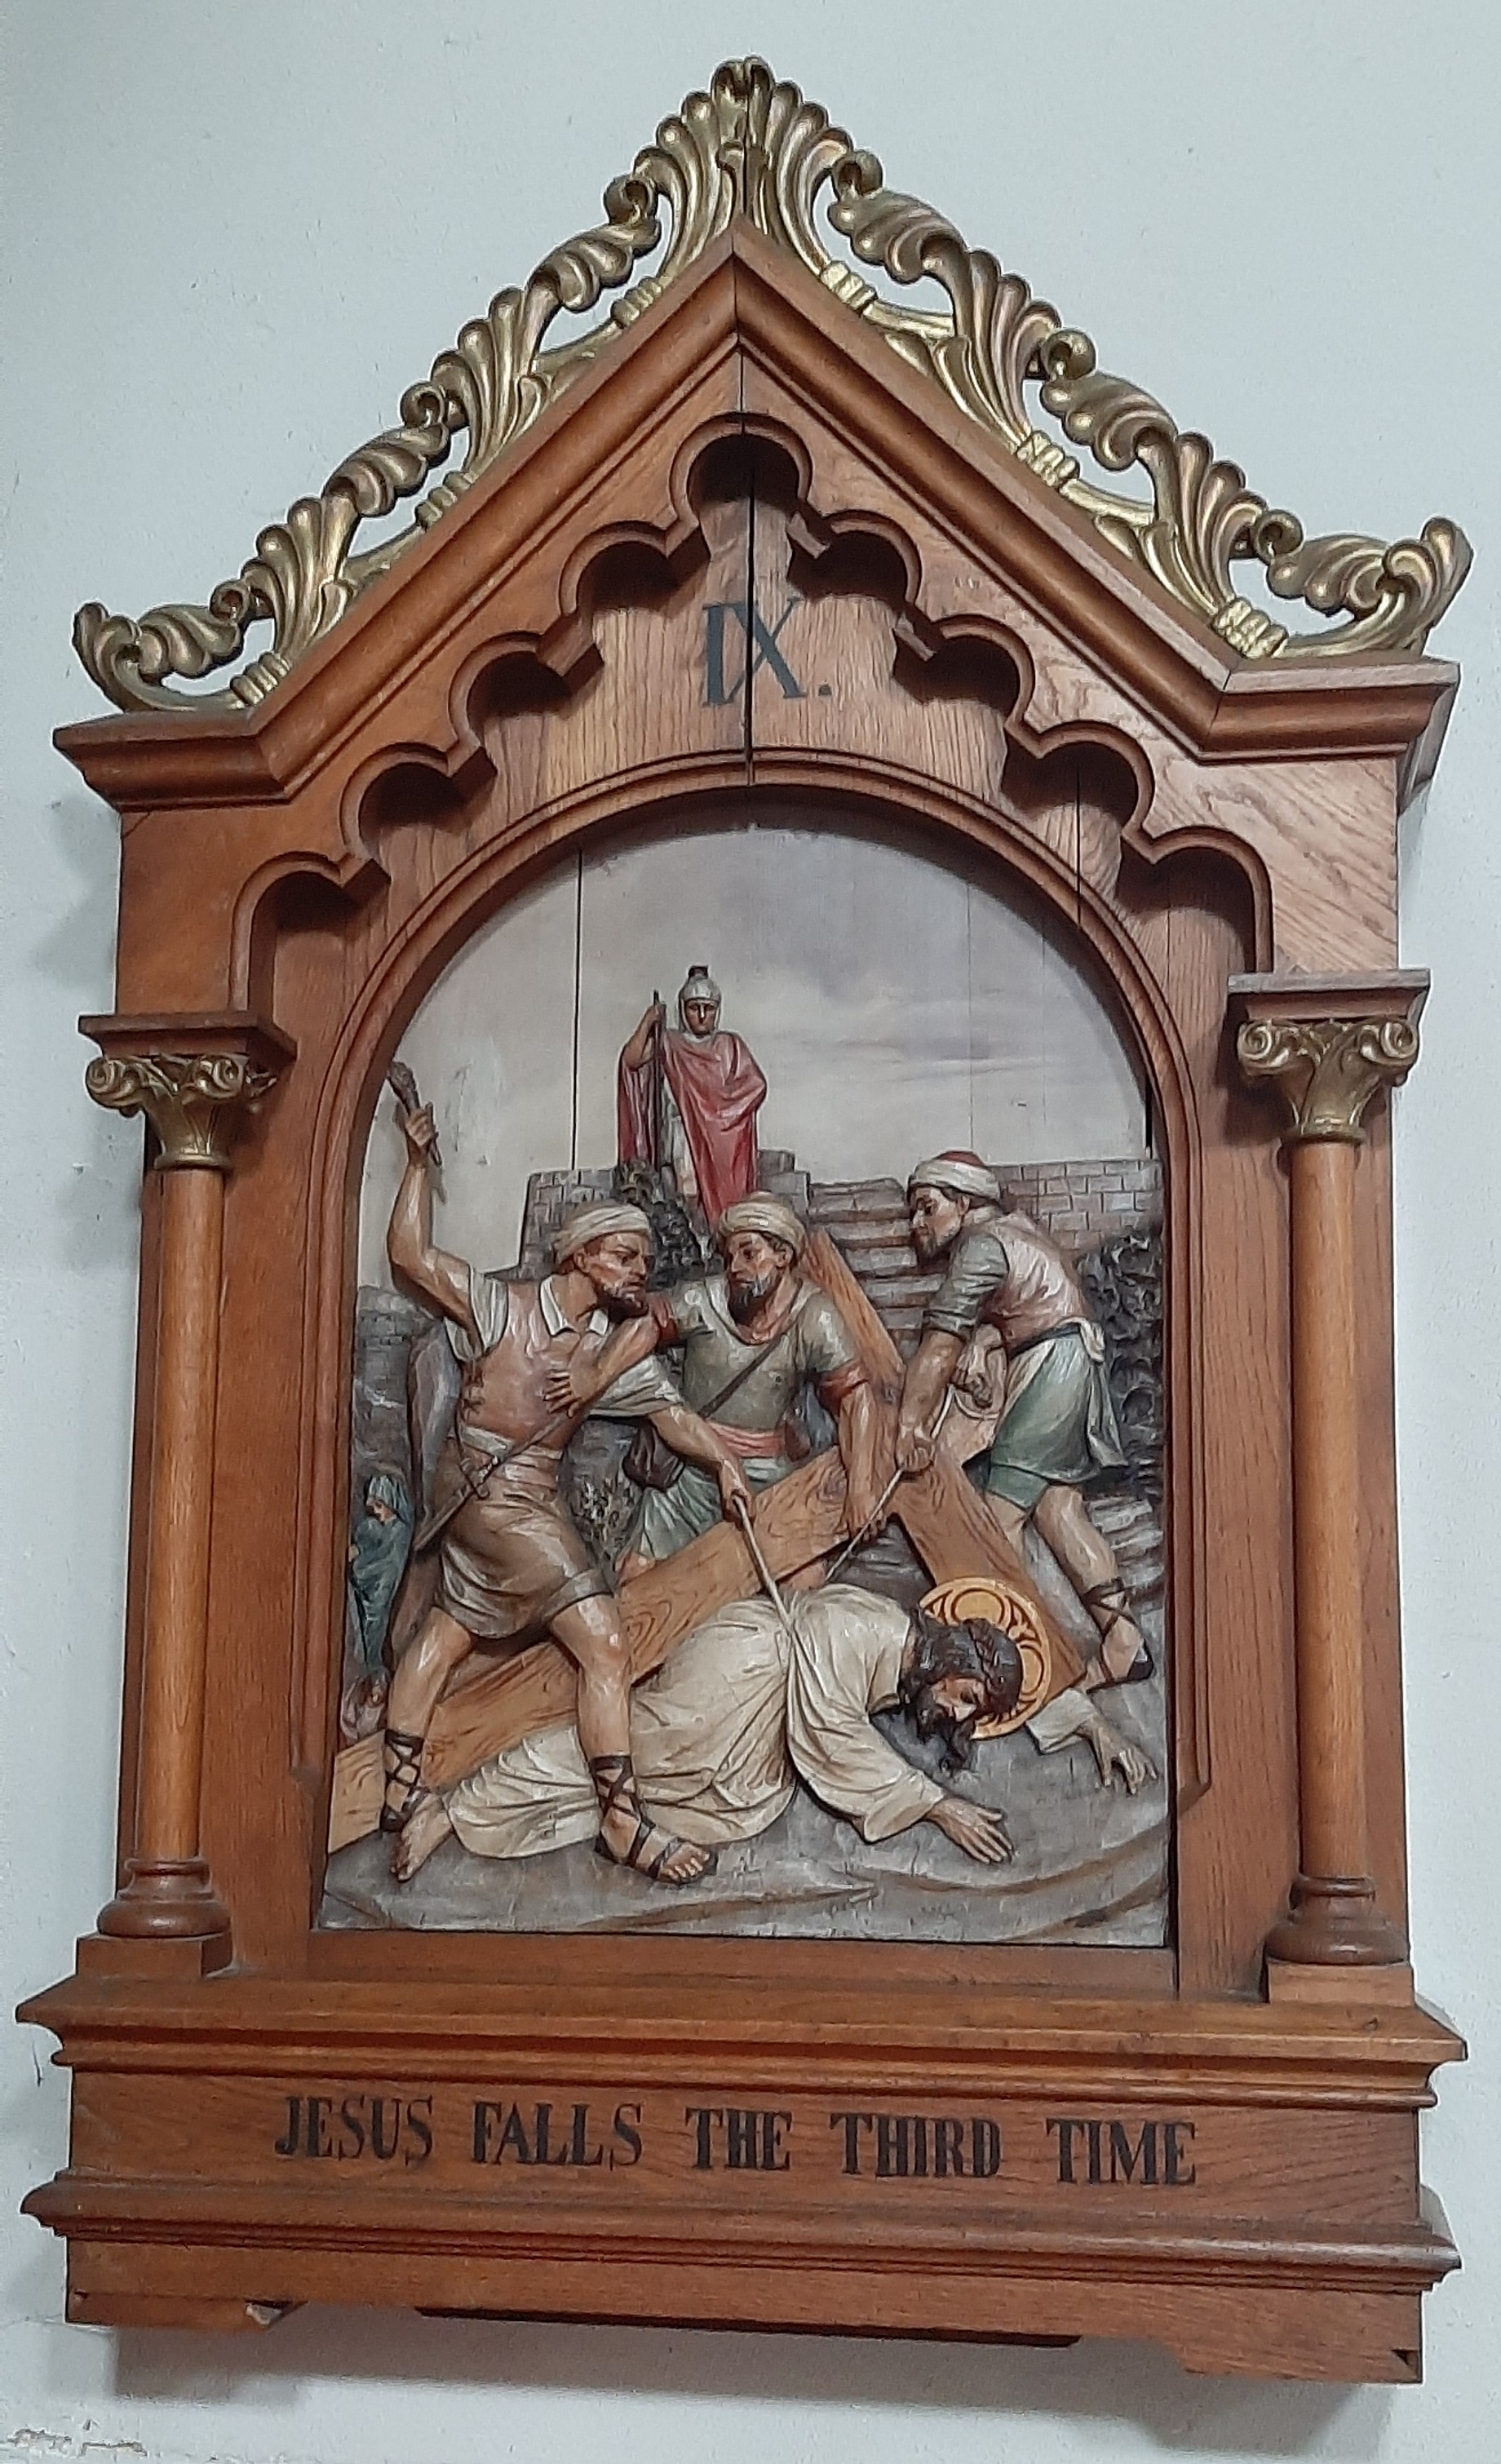 Eleventh Station: Jesus is nailed to the Cross.